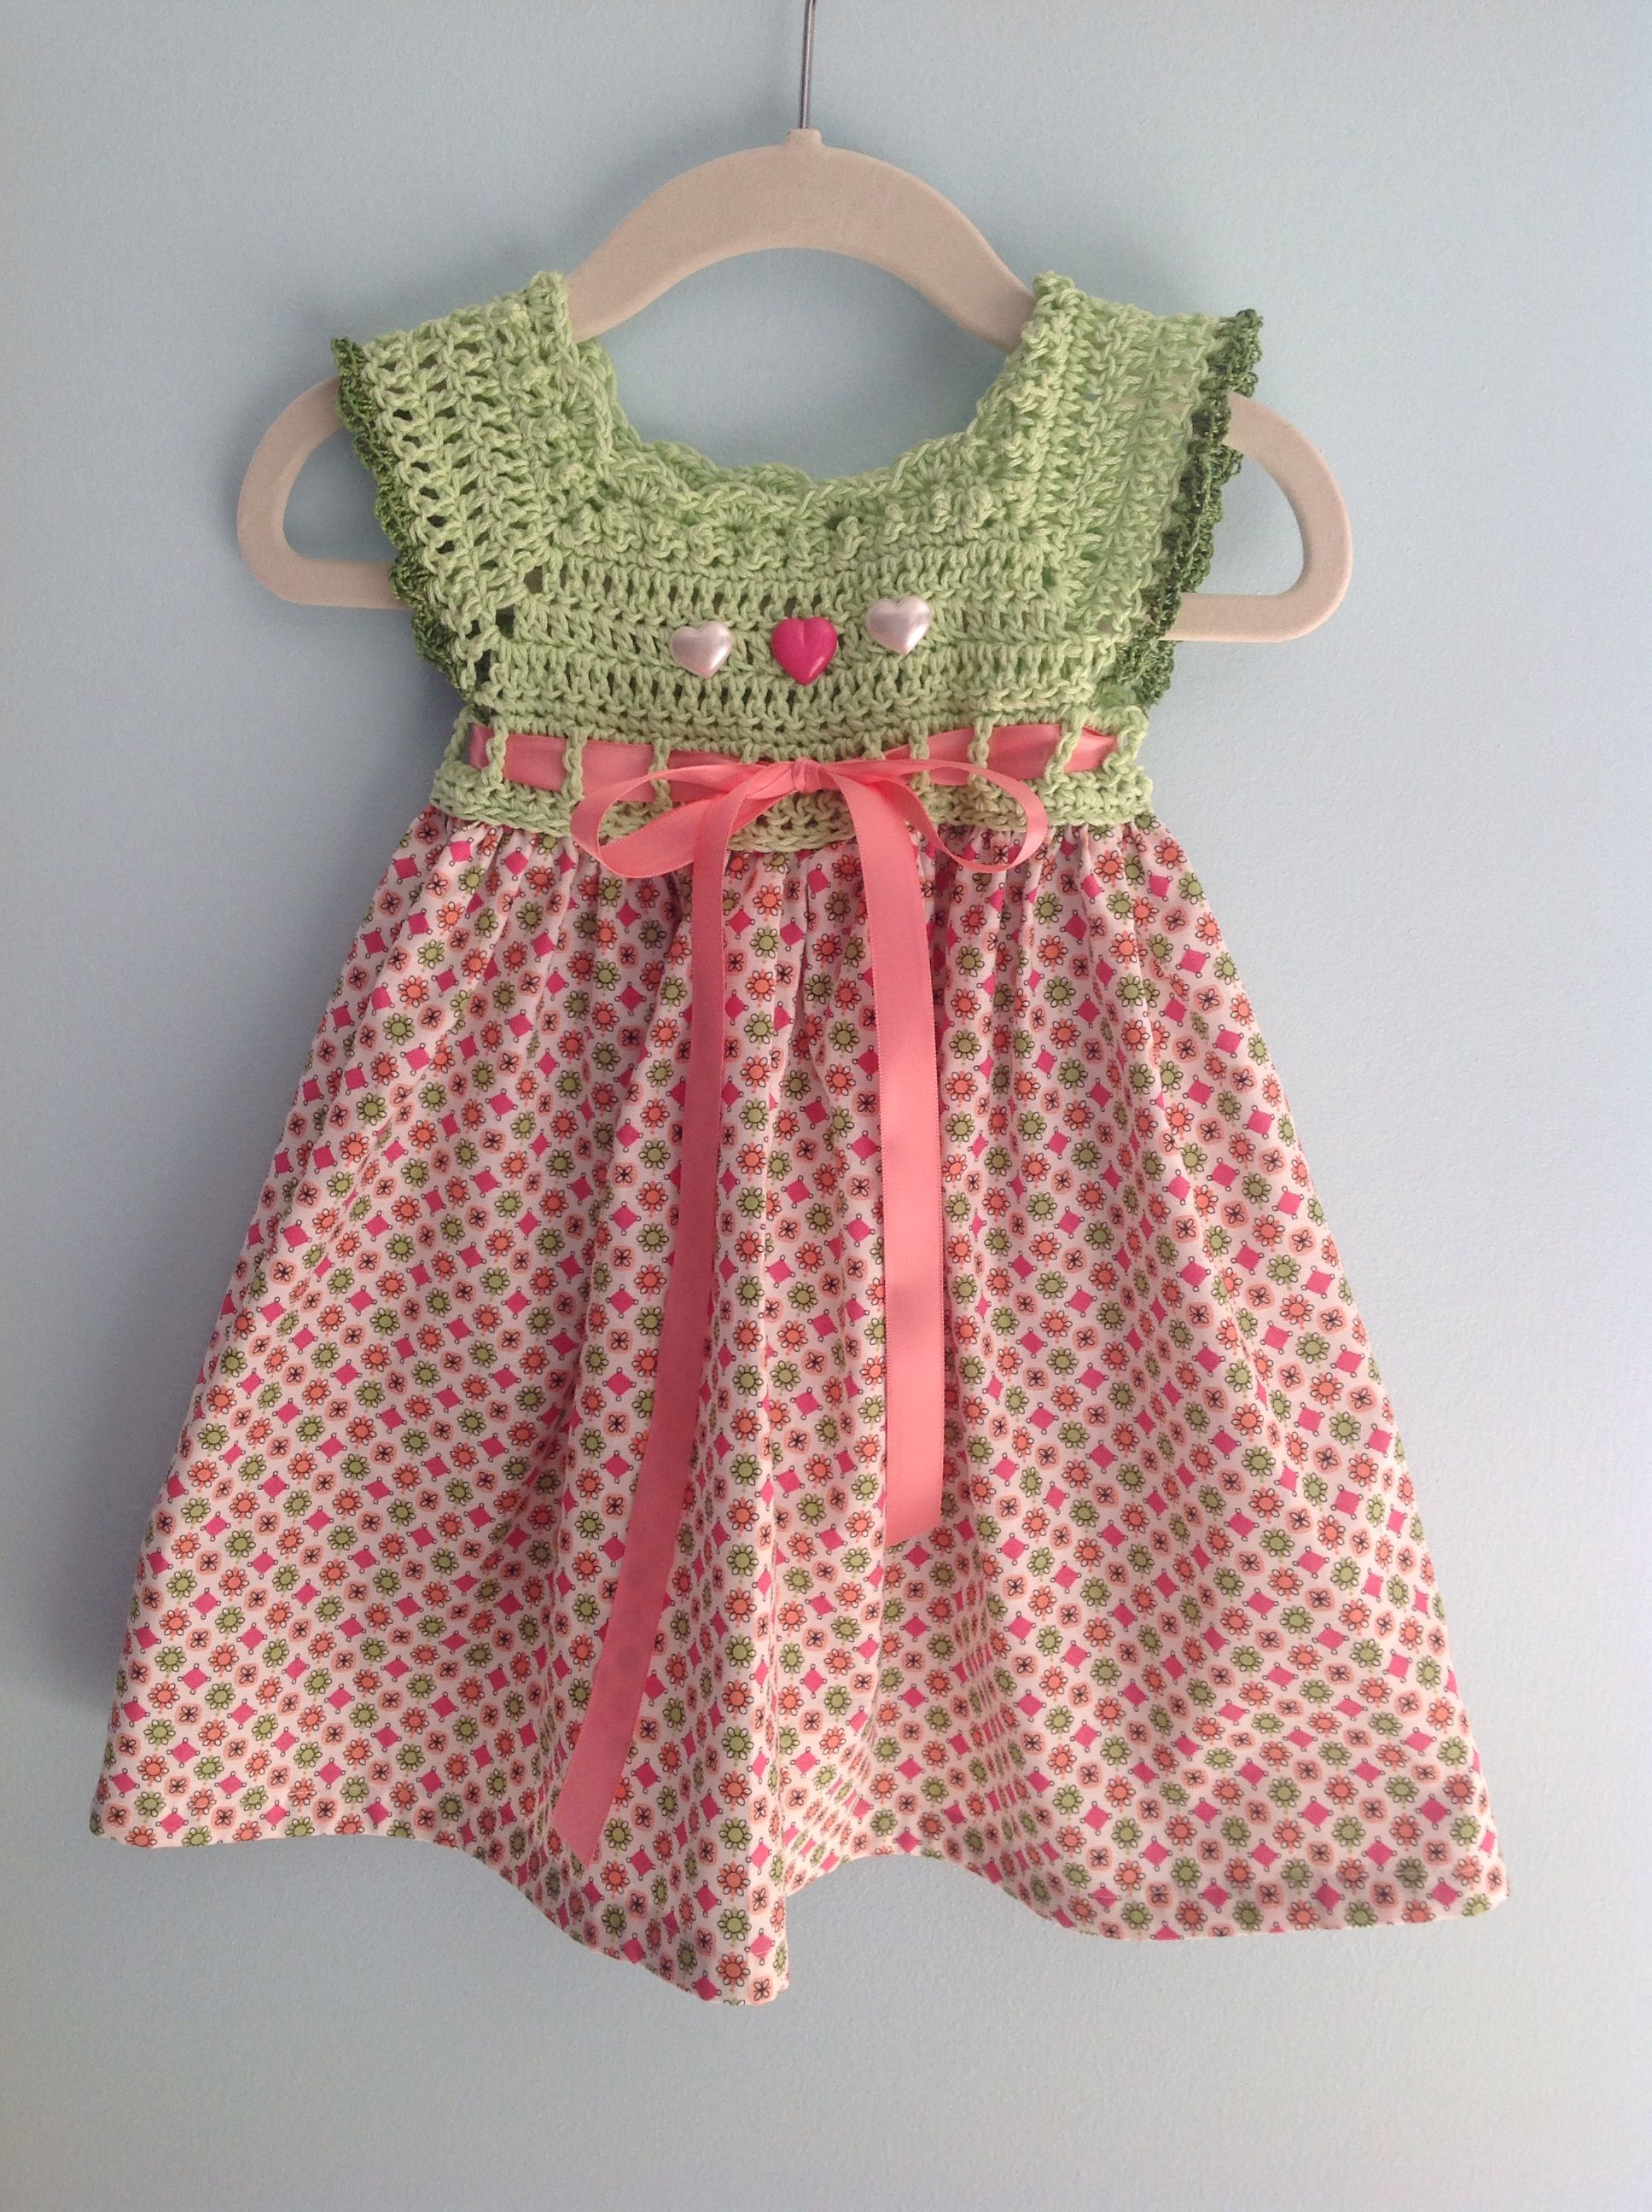 Crochet baby dress crochet for kids and babies pinterest